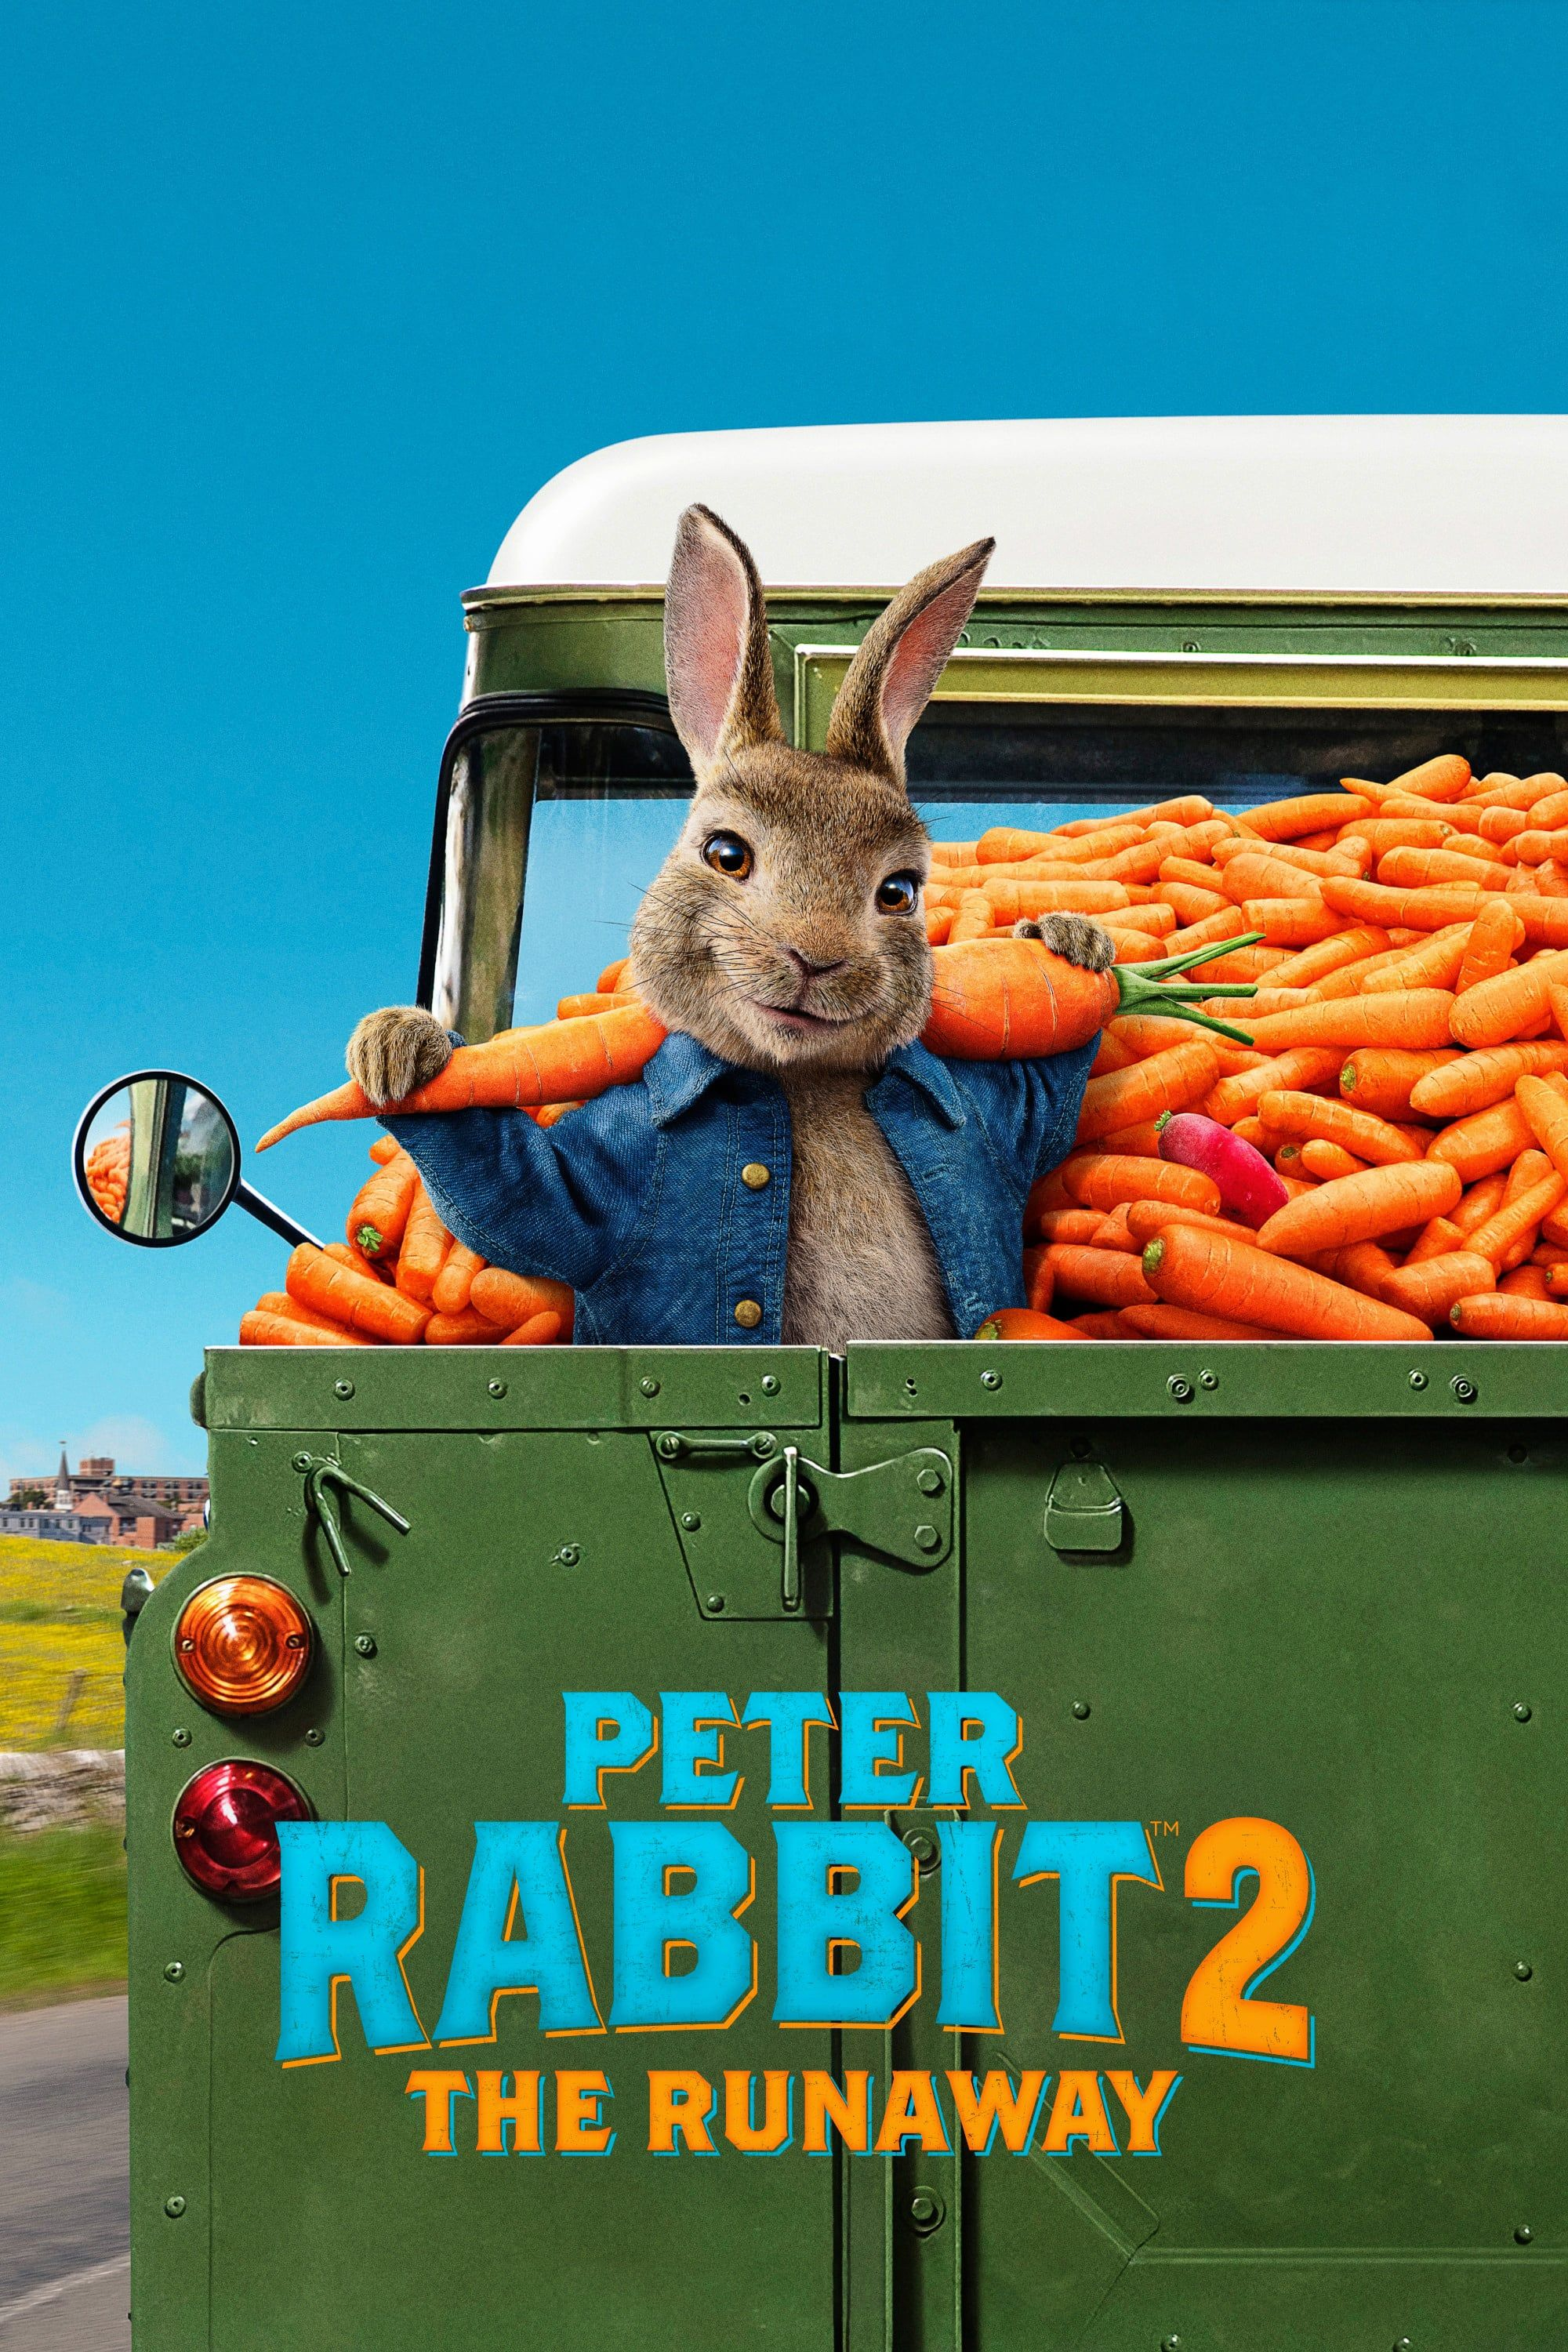 Completo Peter Rabbit 2 The Runaway 2020 Vedere Film Streaming Italiano Hd Peter Rabbit Free Movies Online Hd Movies